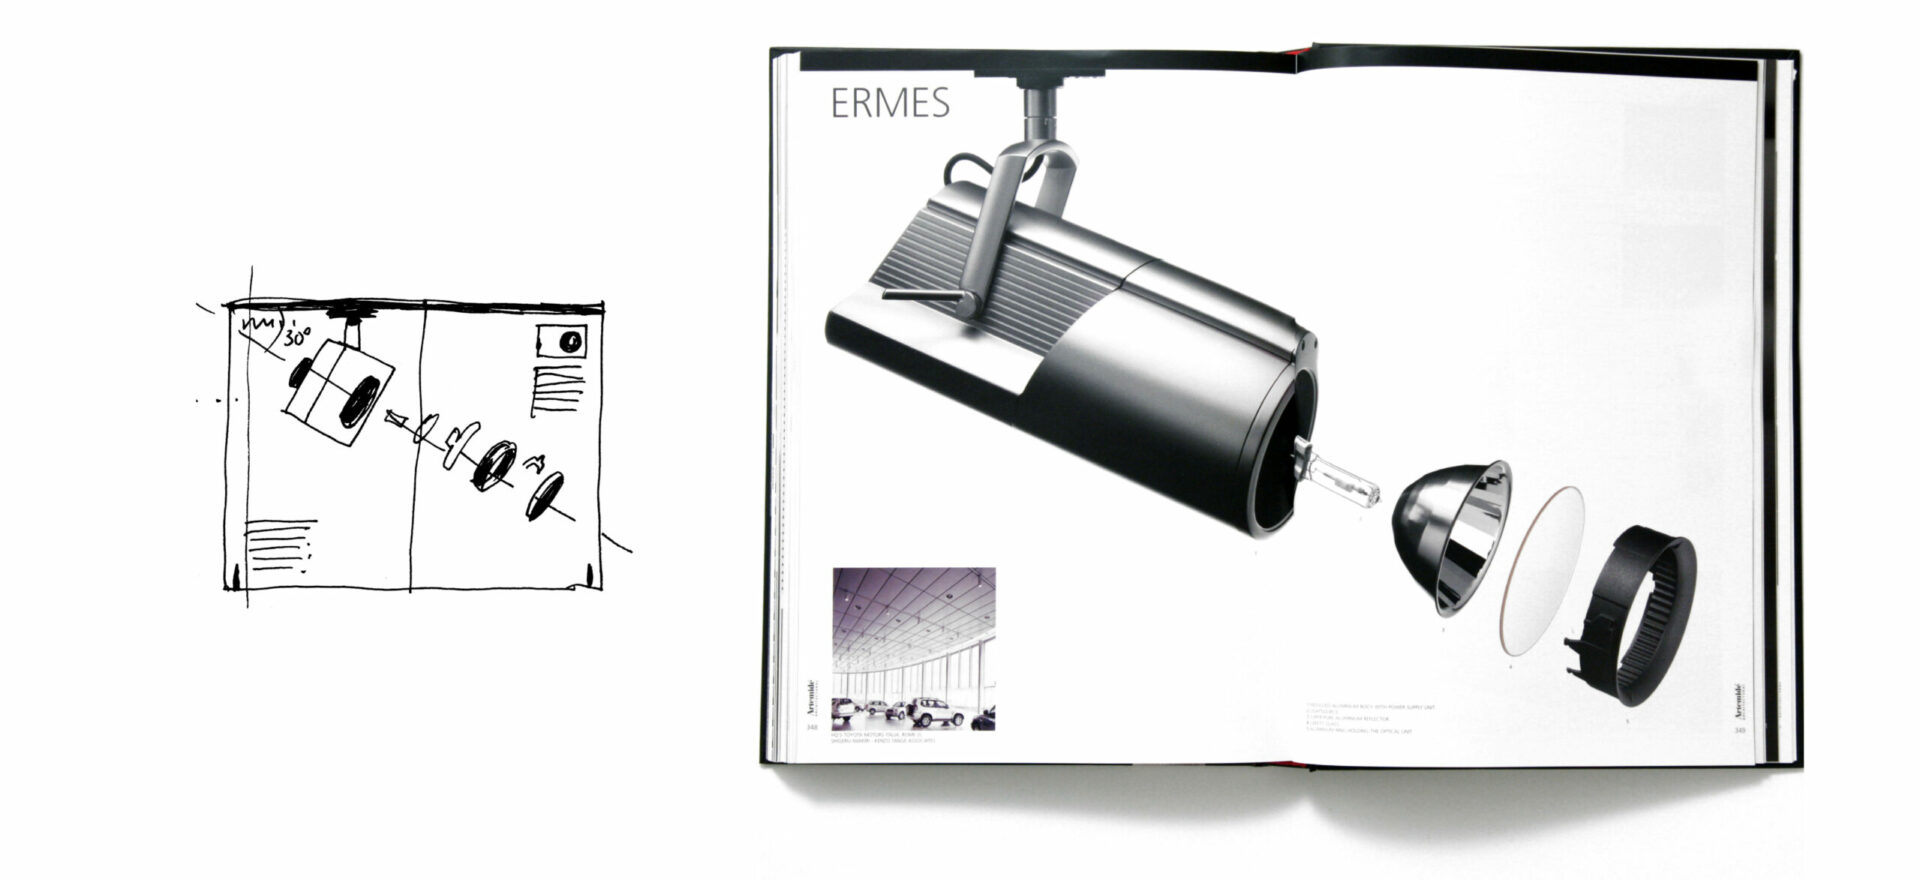 Greyscale Catalog of Ermes model for Artemide Architectural, light design with 1 sketch in black and white on the left side of the image and the opened brochure on the right side of the image showing model Ermes in a greyscale image with white background.